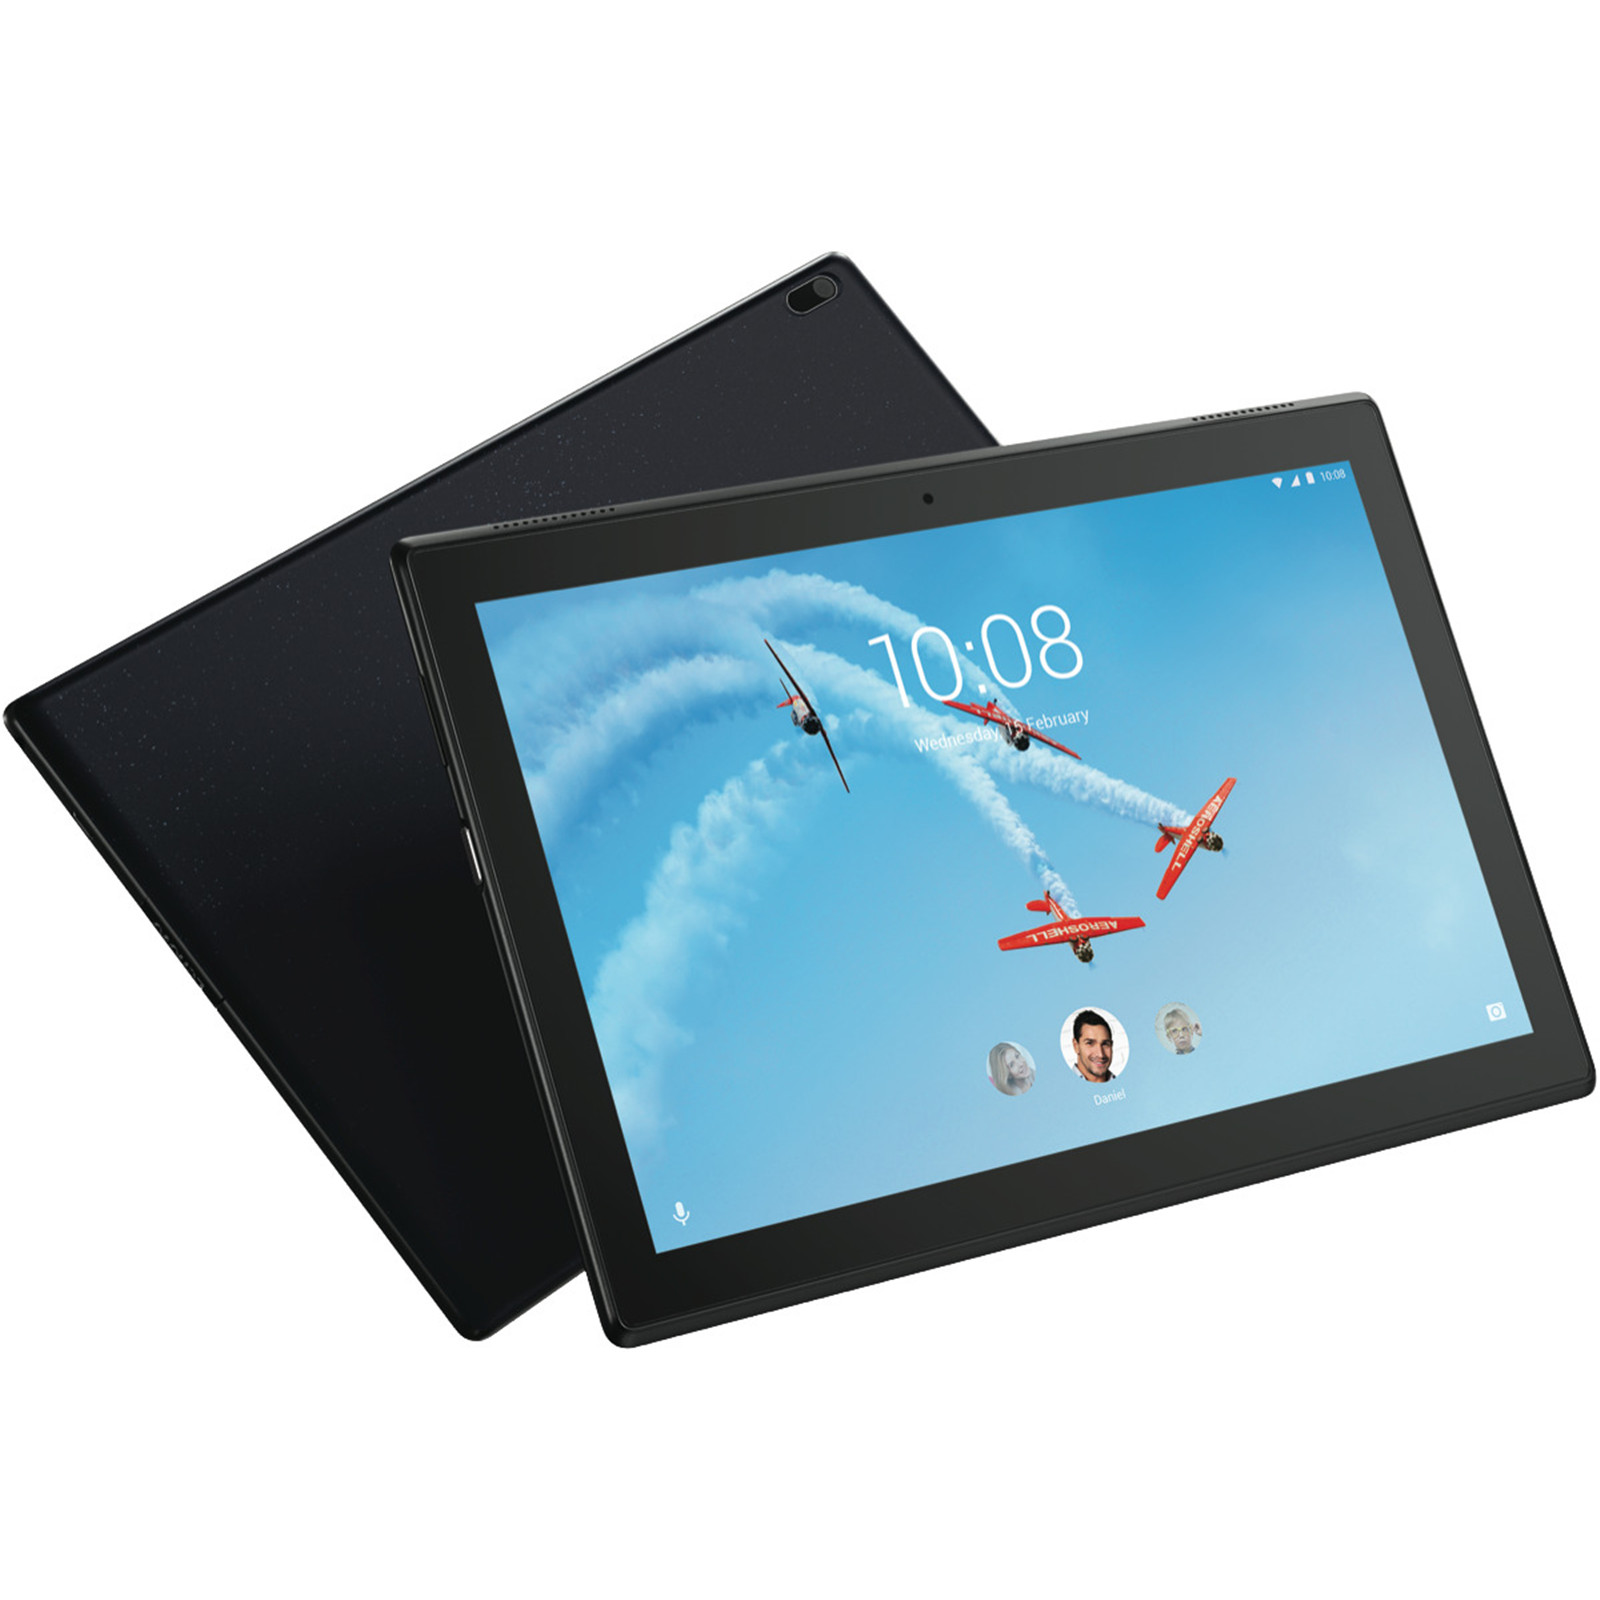 "Lenovo Tab 4 10.1"" HD (1280 x800) 16GB Storage Quad Core 1.4Ghz 2GB Ram Android 7.0 WiFi ,Bluetooth -Black"